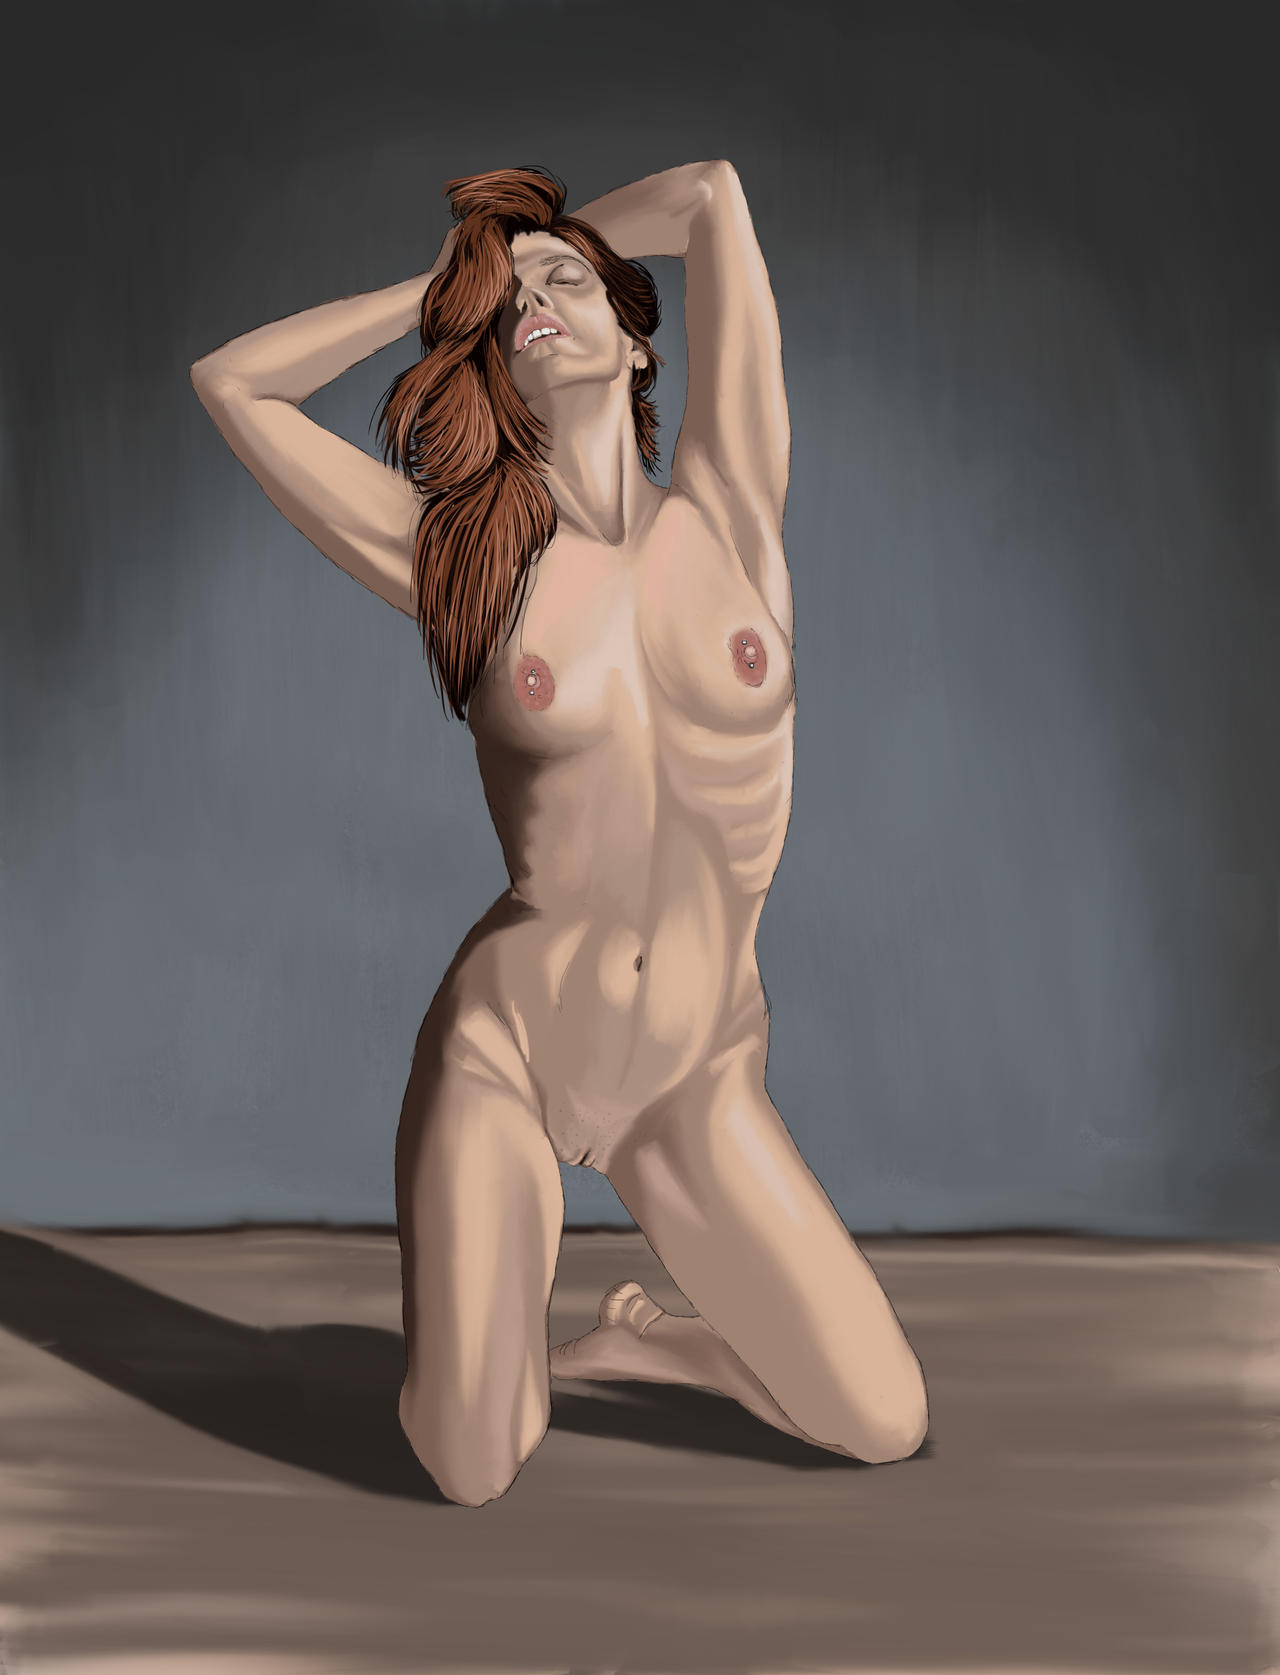 Learning Painter Nude Study by LostLinkArt